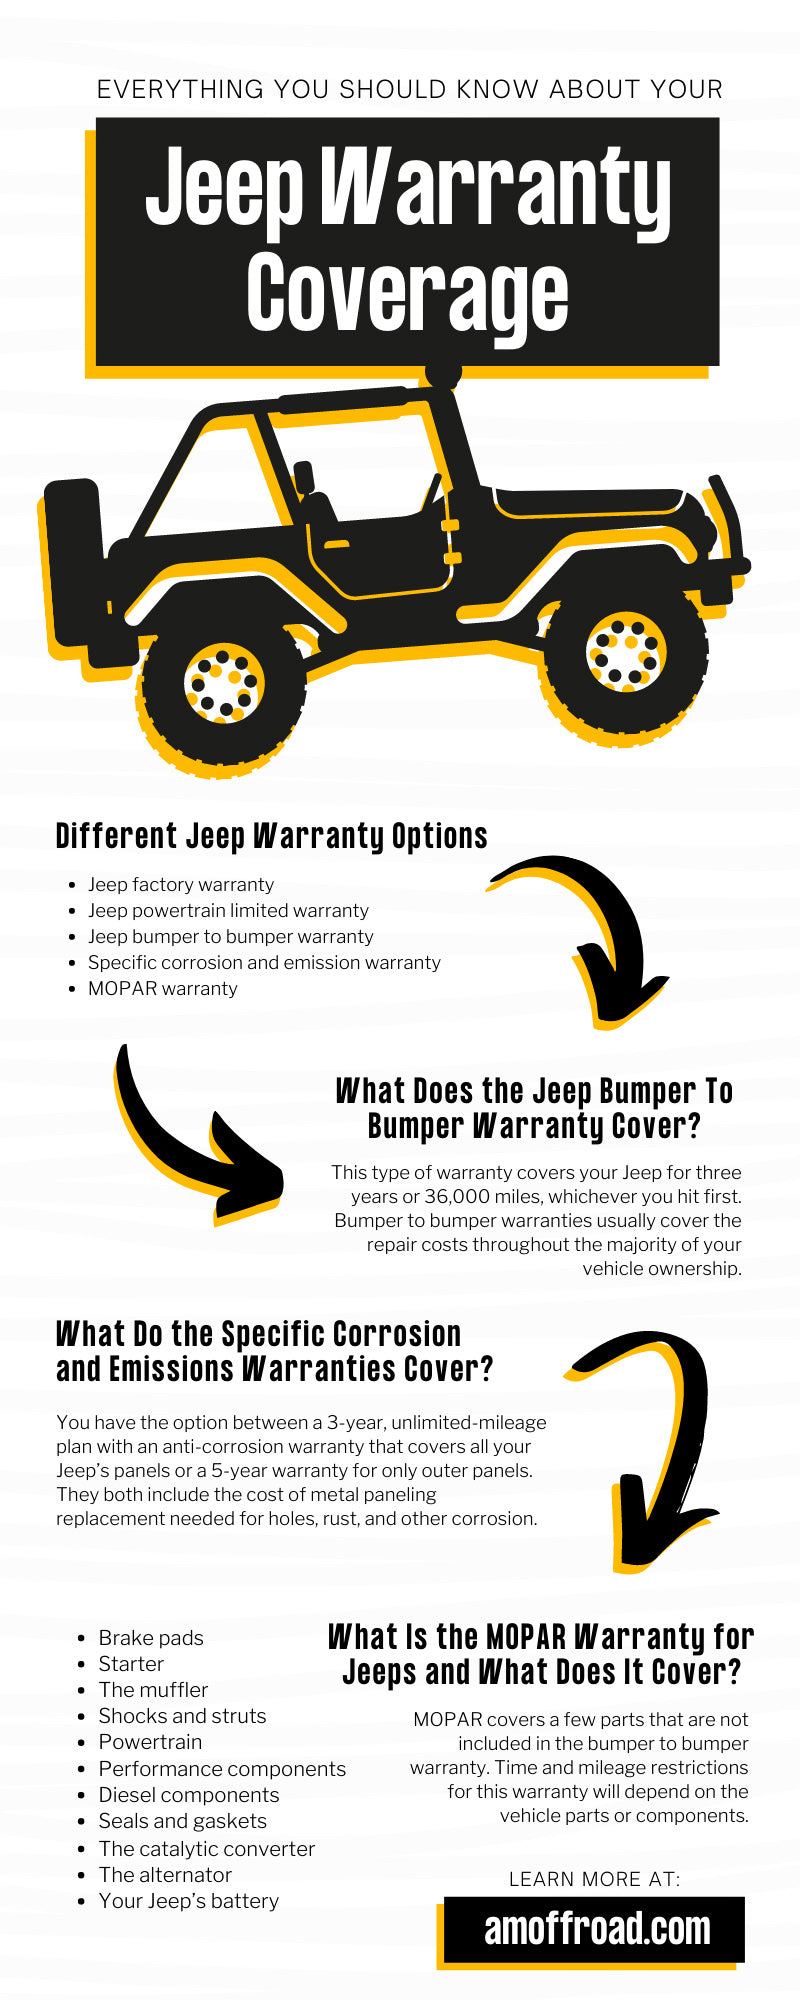 Everything You Should Know About Your Jeep Warranty Coverage